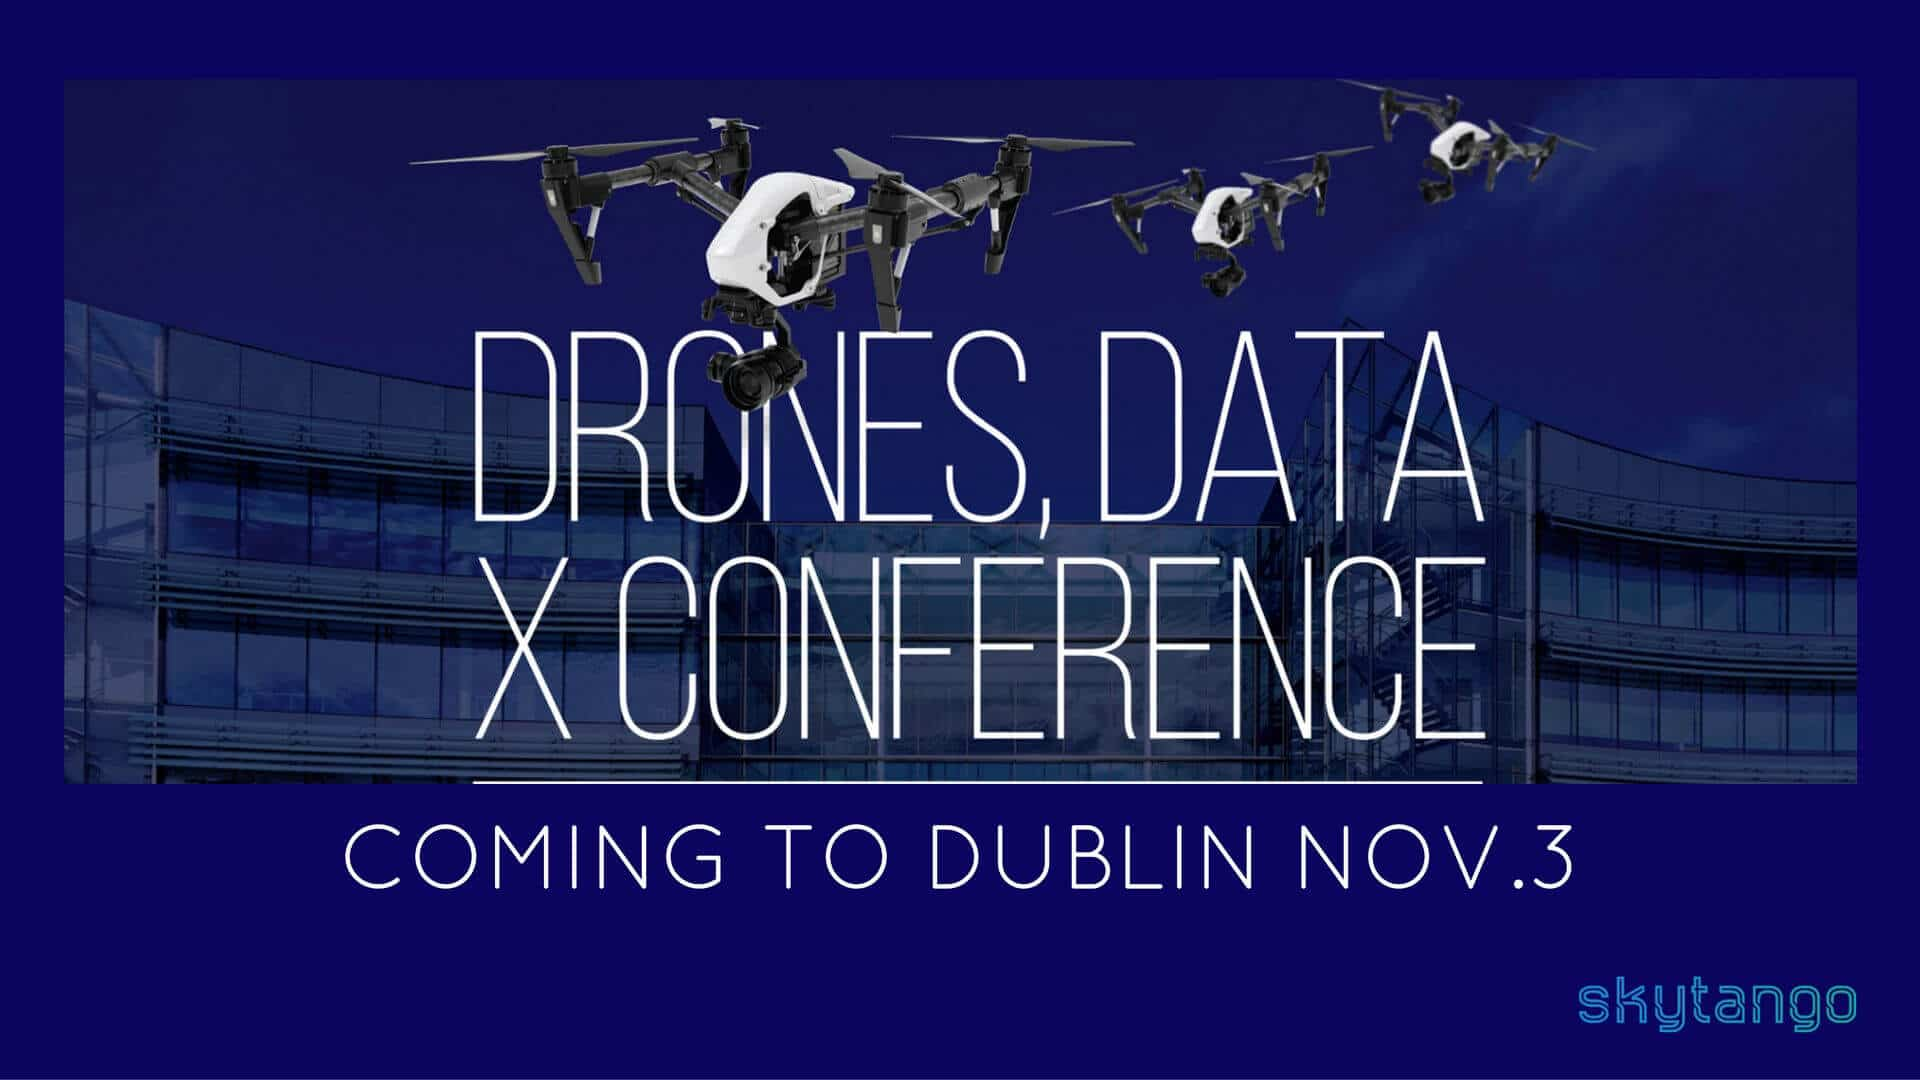 Drones Data X Conference coming soon to Dublin for 2016 edition